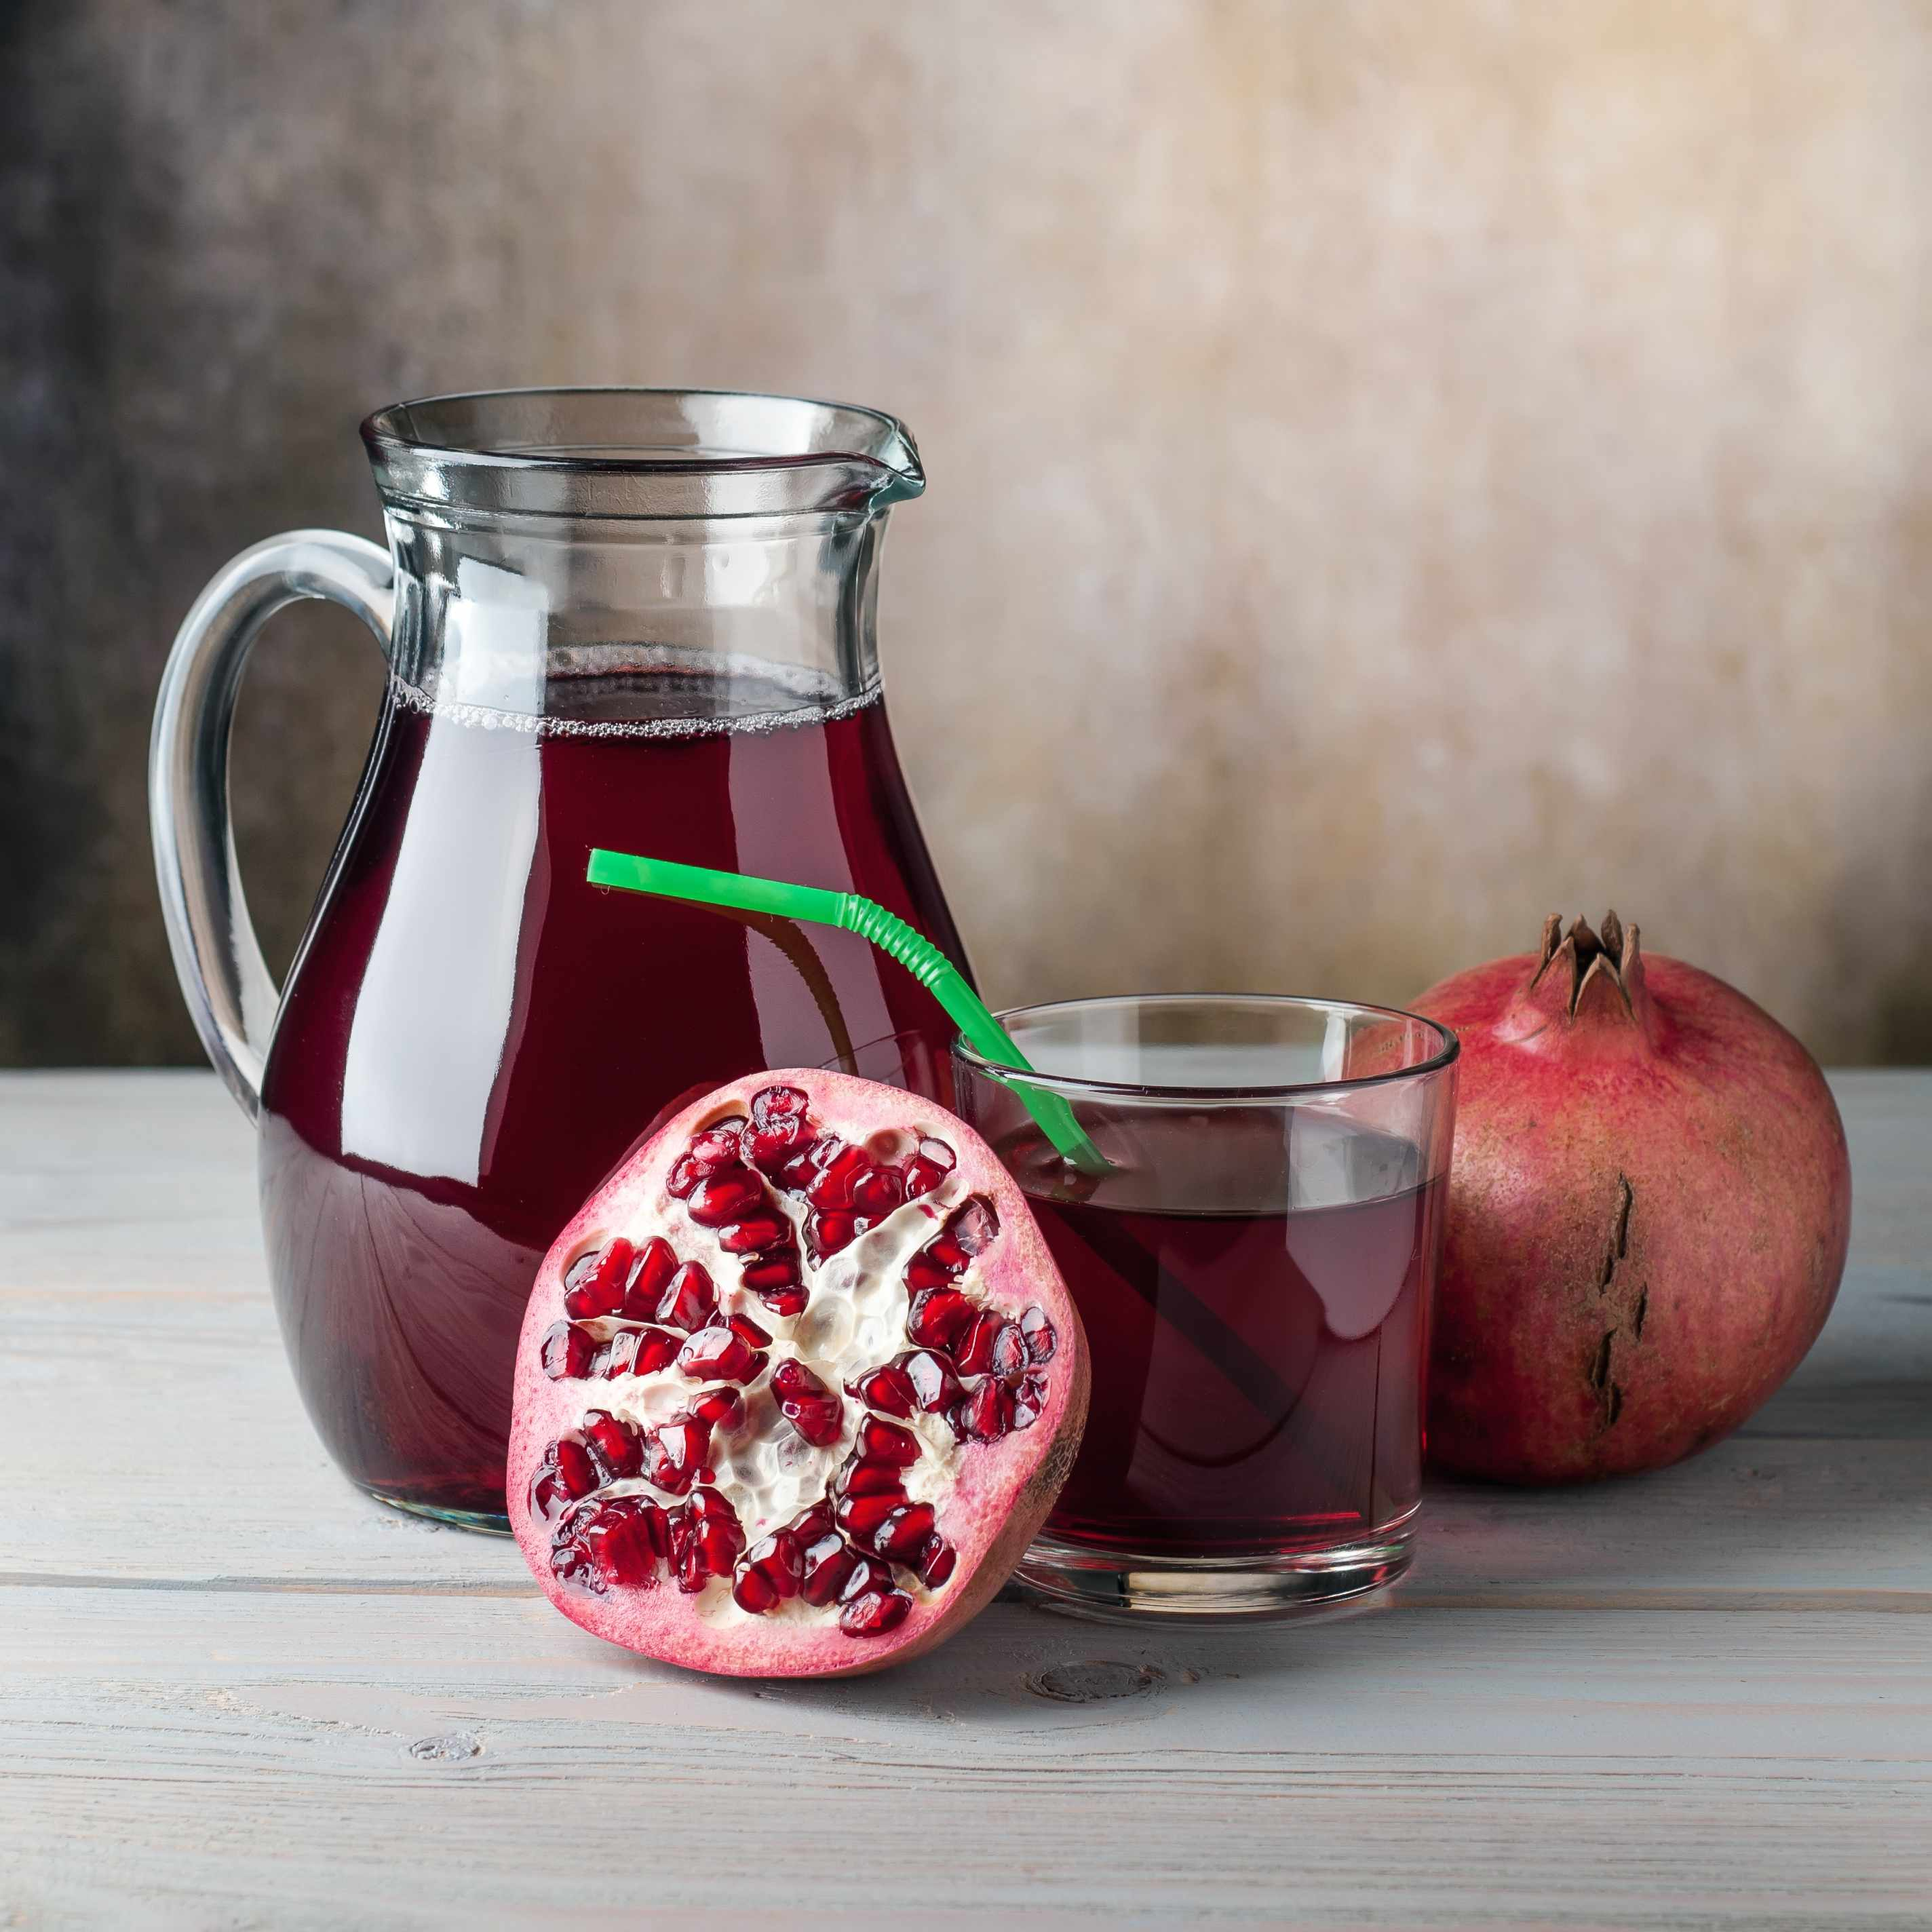 a whole pomegranate, one cut in half, and pomegranate juice in a pitcher and a glass